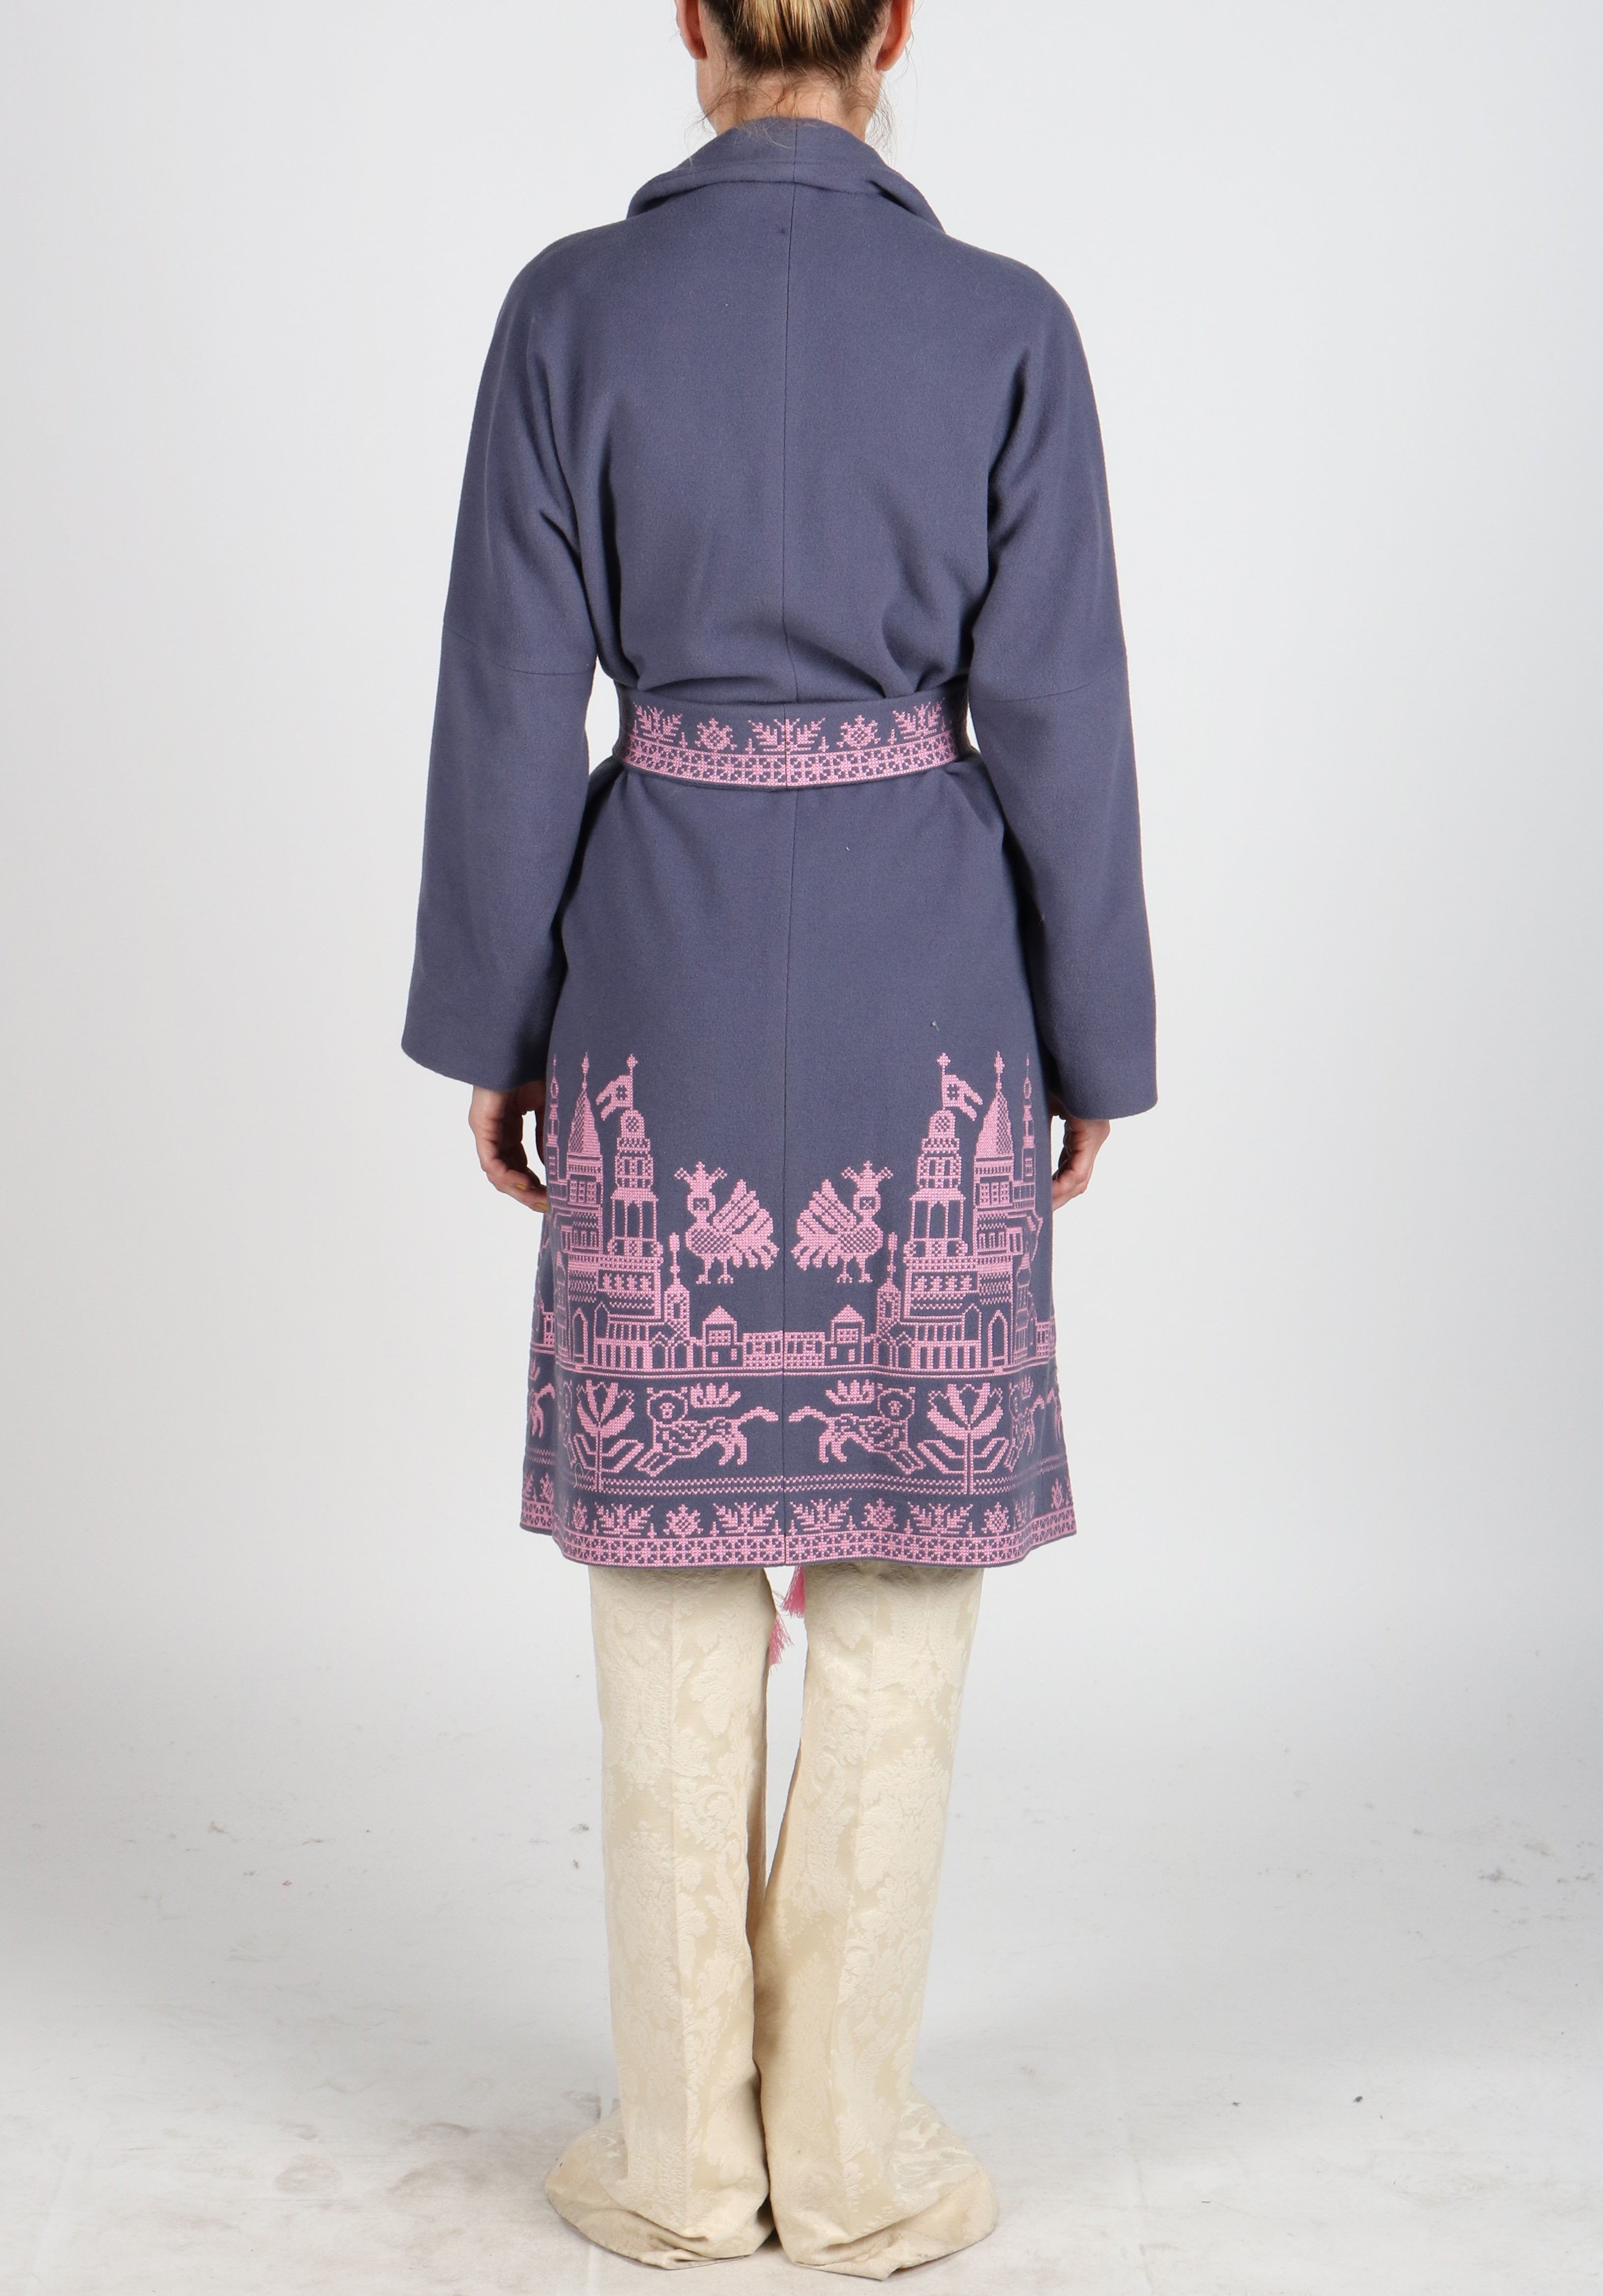 Fanm Mon STEEL Vyshyvanka Dark Gray Wool Pink Embroidered City Life Theme Coat